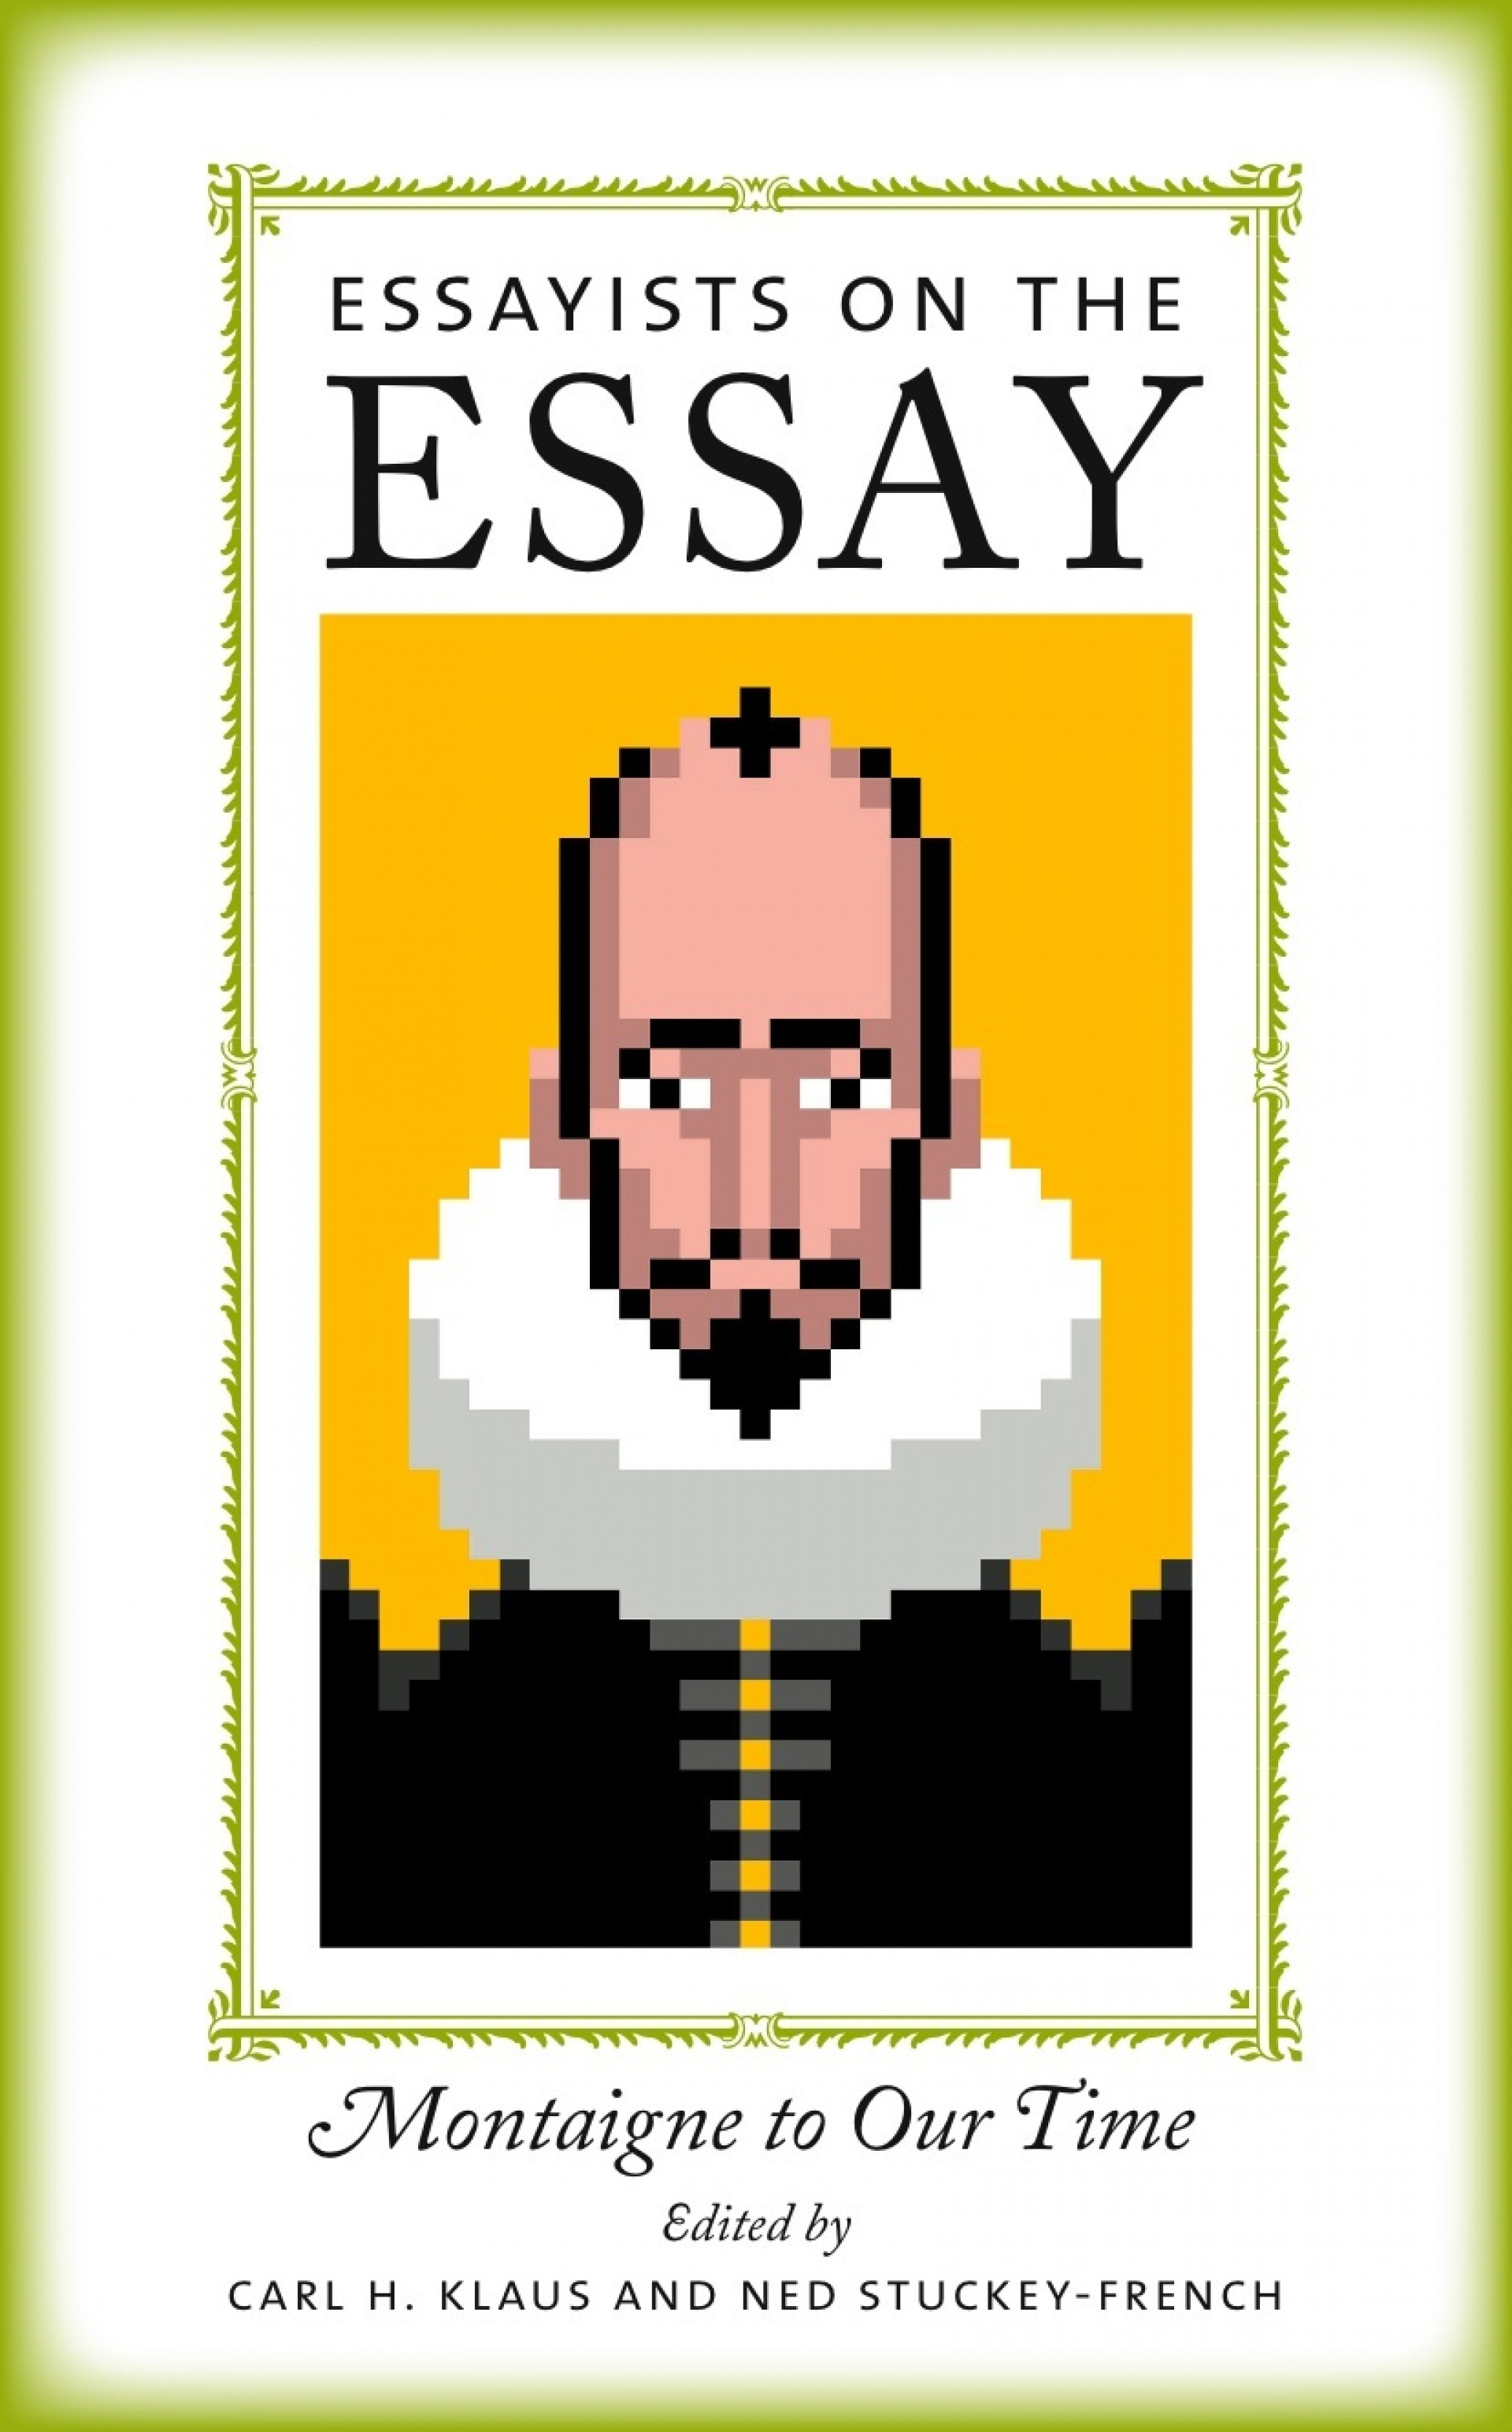 024 Essay Example It Gets Worse Collection Of Essays Essayists On The Impressive A Review Free Download 1920